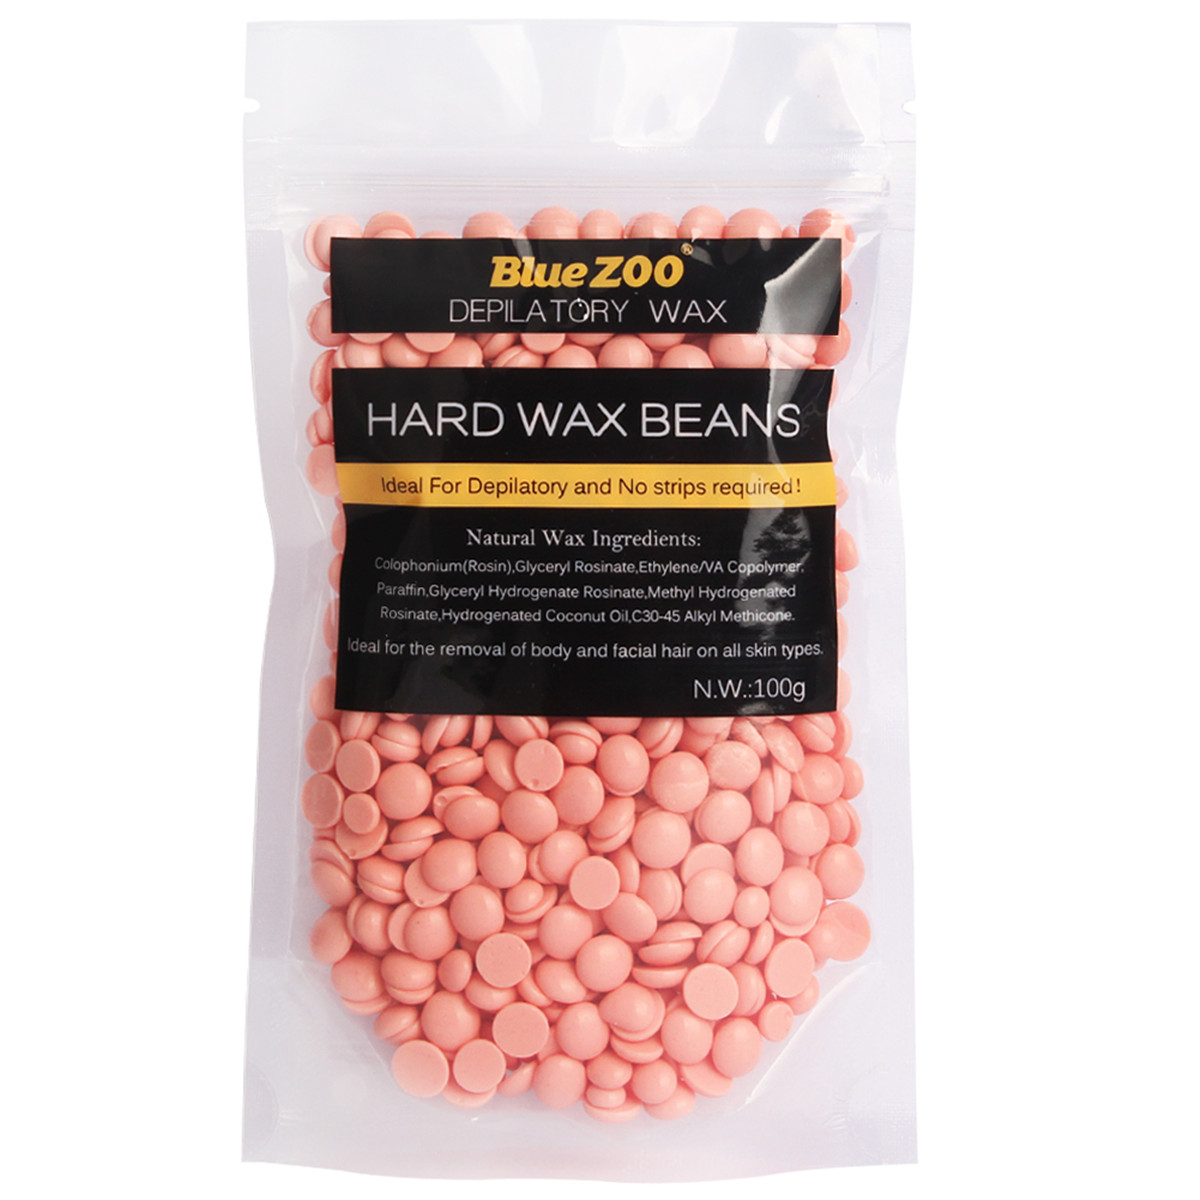 Depilatory Hot Film Hard Wax Bean Pellet Waxing Body Bikini Hair Removal 100g